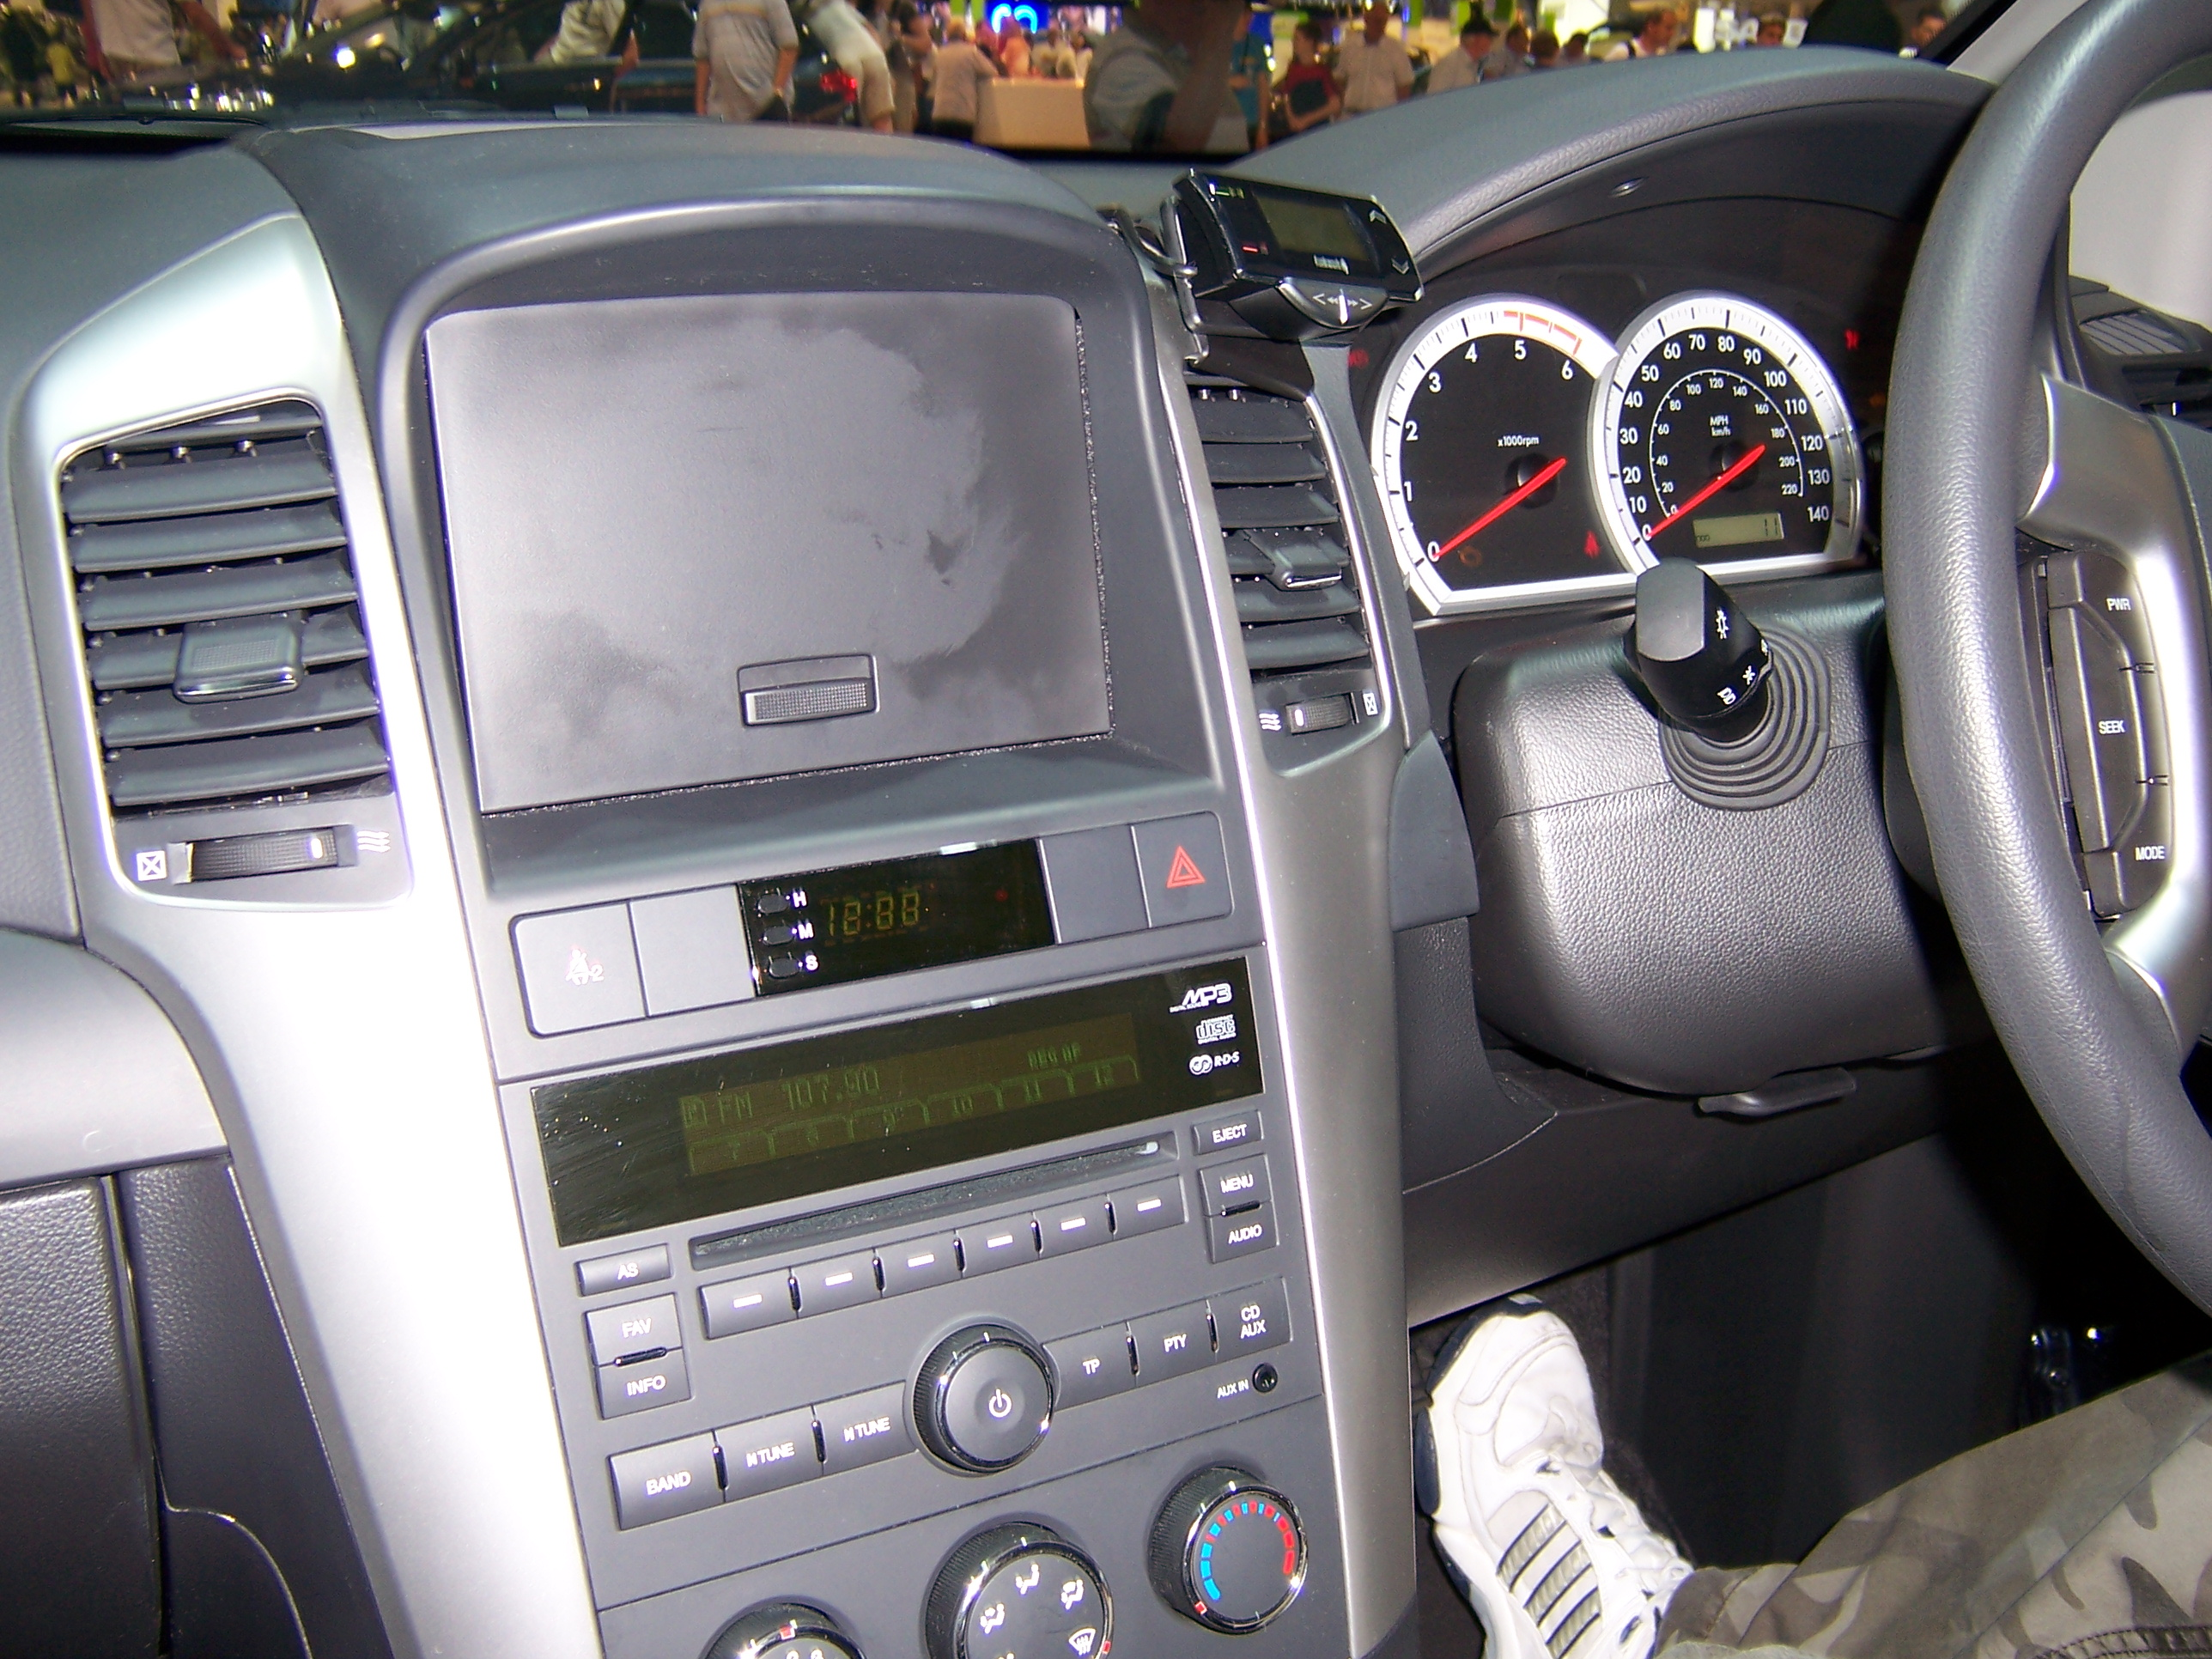 File:Chevrolet Captiva Interior - Flickr - Alan D.jpg - Wikimedia ...